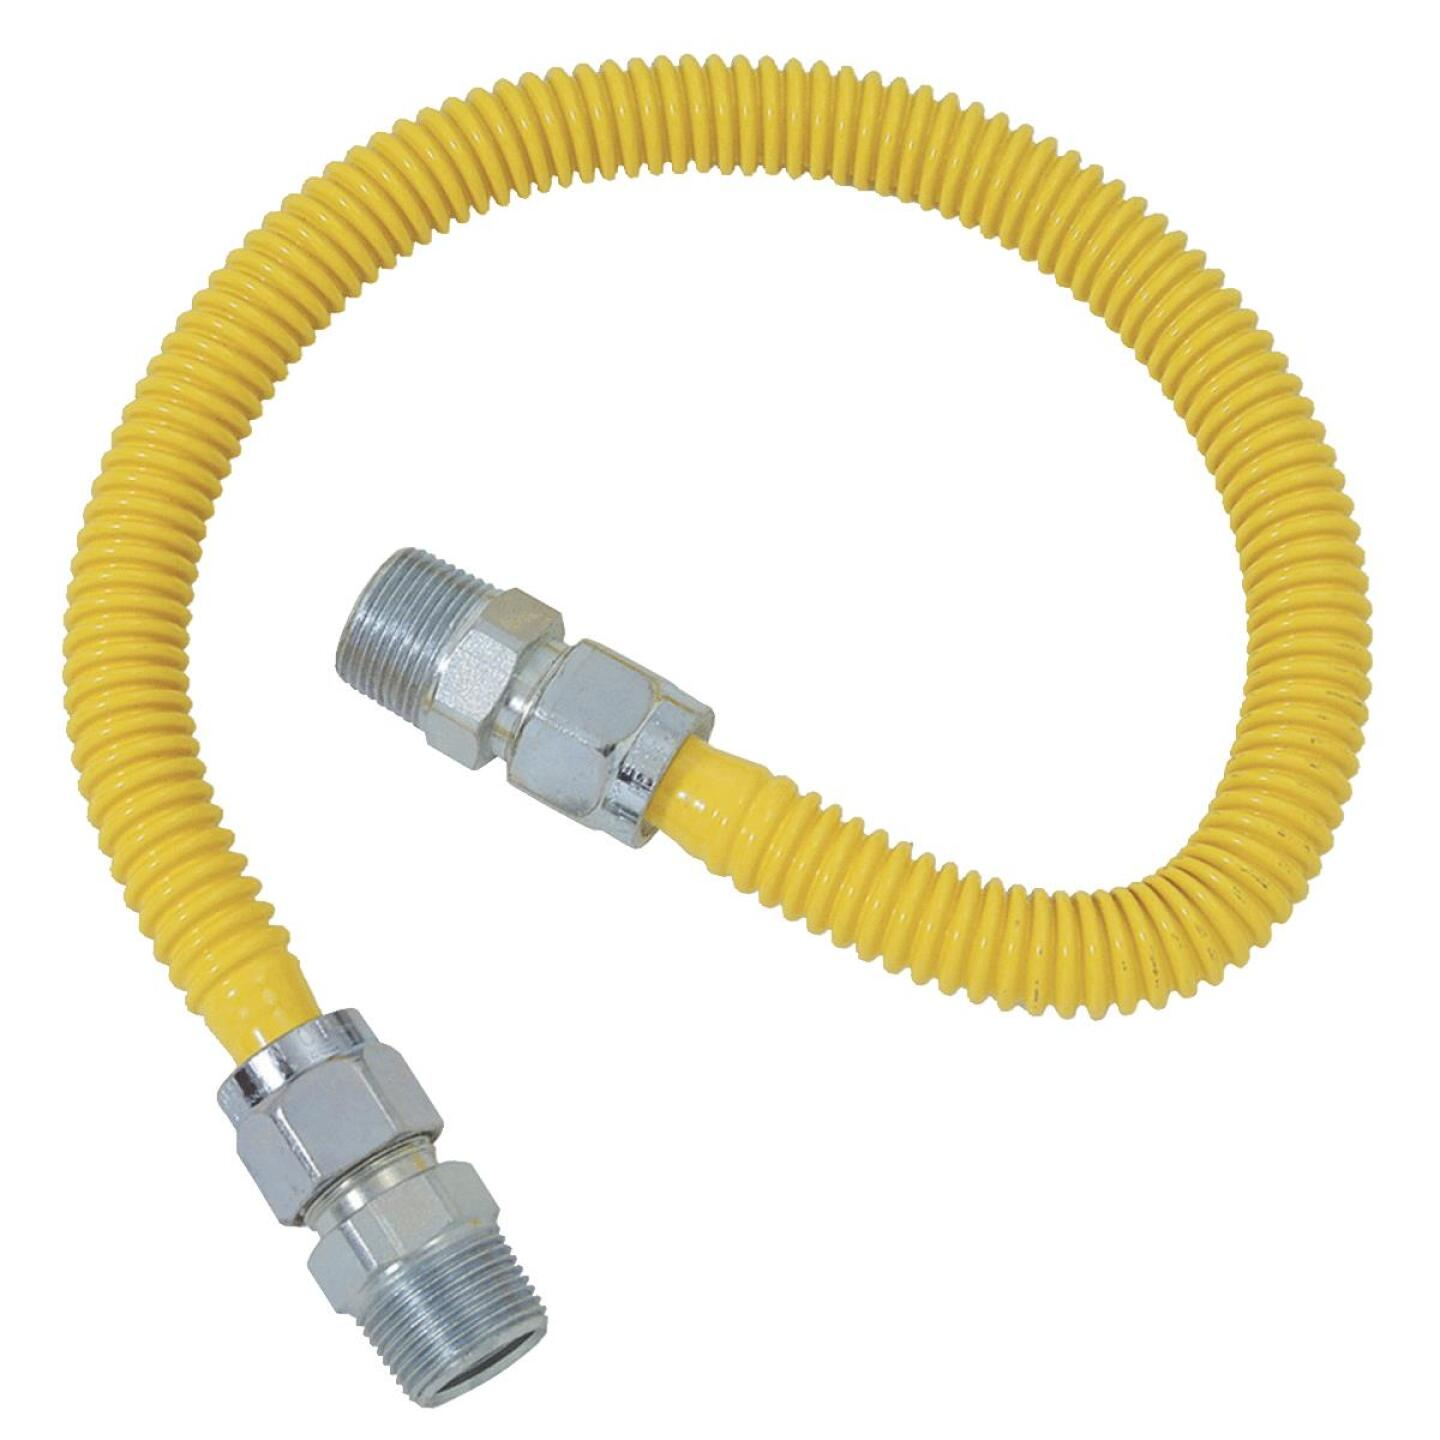 BrassCraft ProCoat 5/8 In. x 1/2 In. x 72 In. Gas Connector Image 1